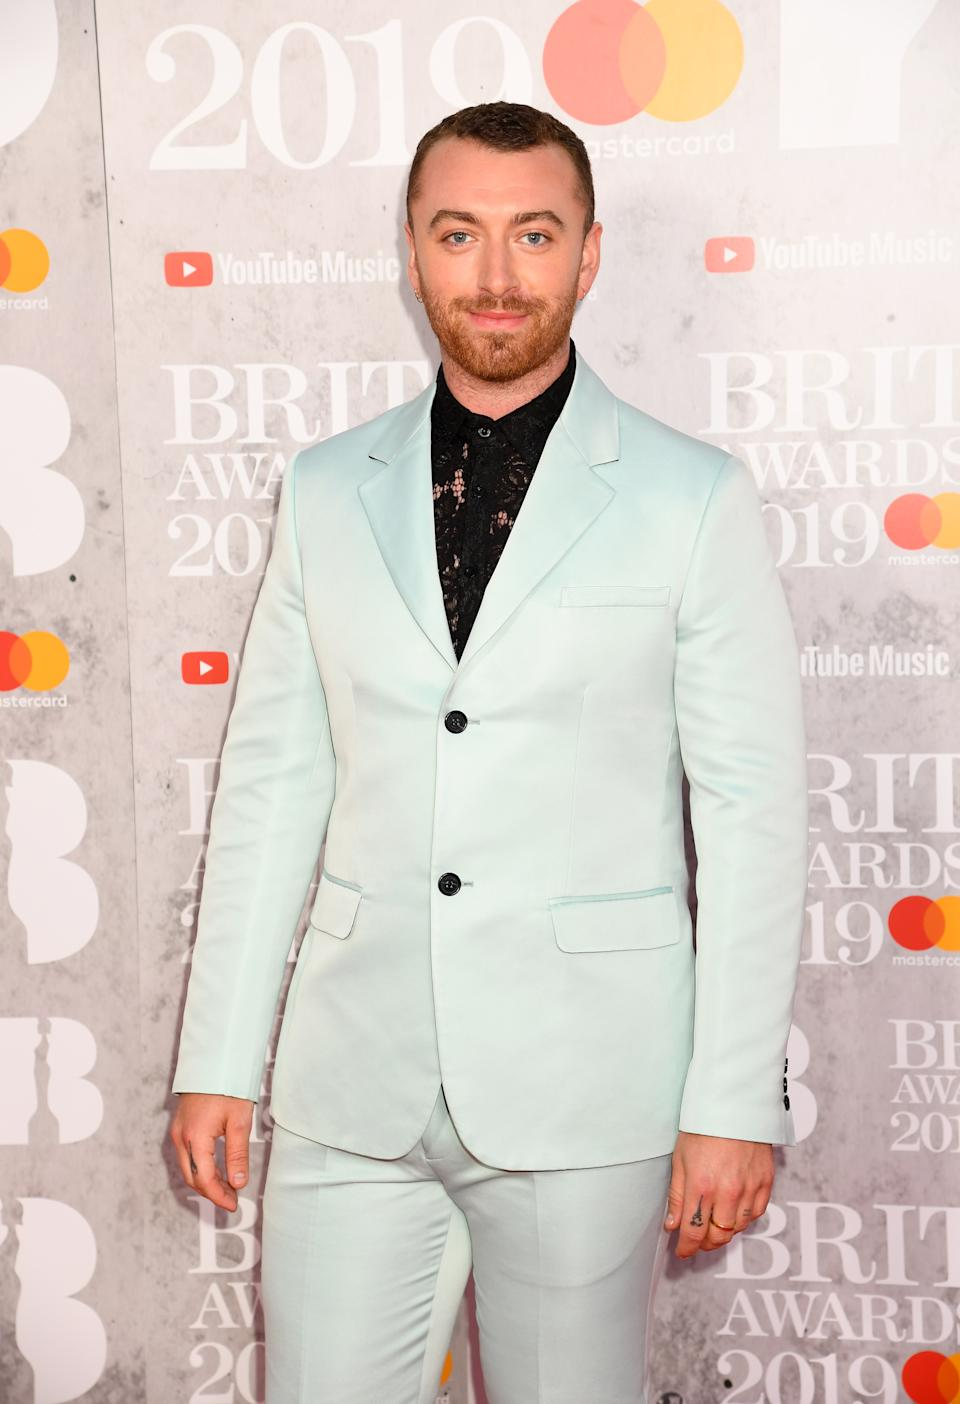 Sam Smith attends The BRIT Awards 2019 held at The O2 Arena on February 20, 2019 in London, England. (Photo by Dave J Hogan/Getty Images)